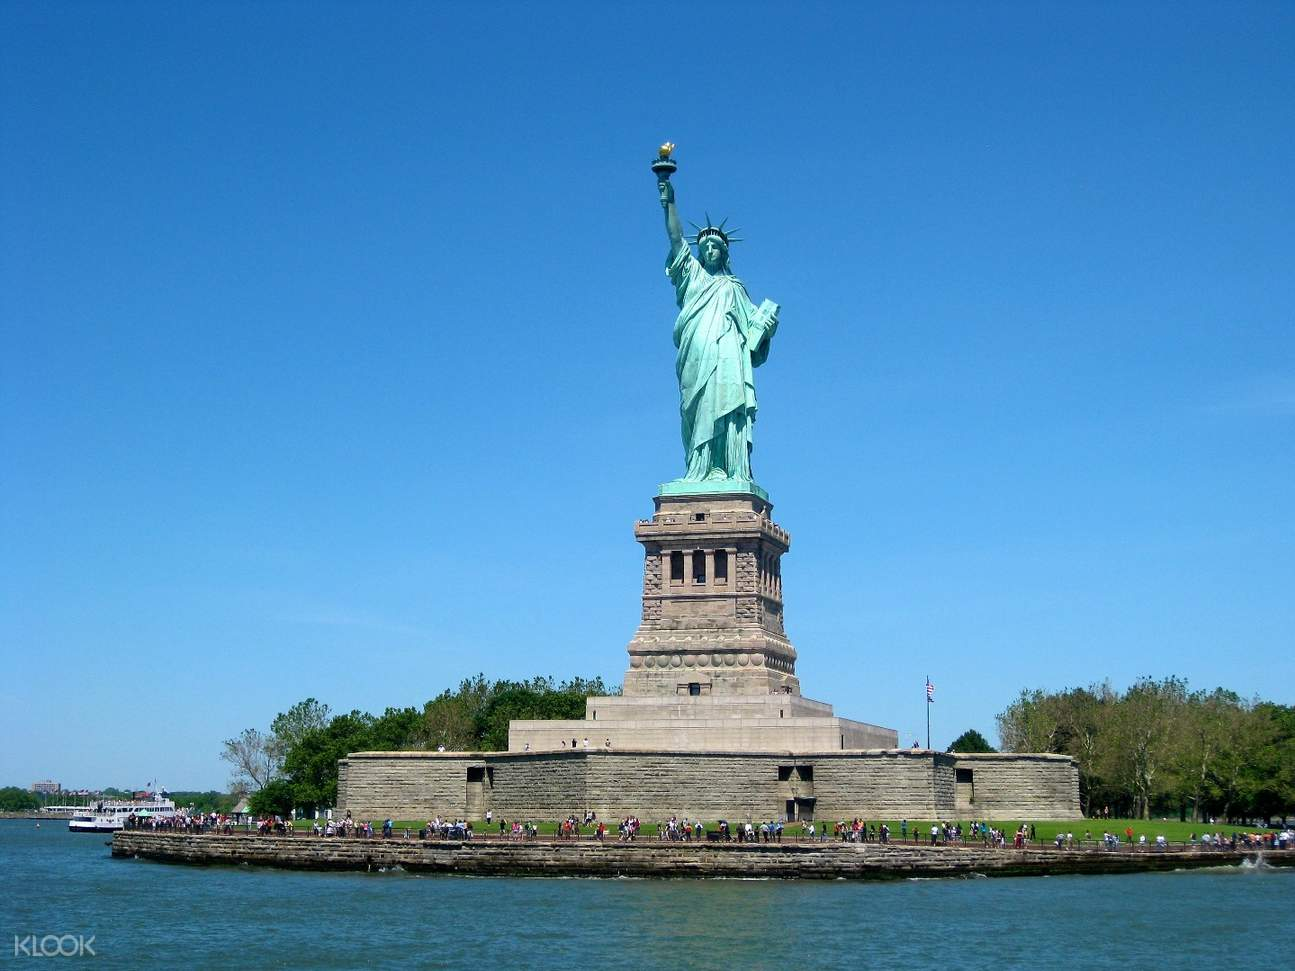 sightseeing cruise statue of liberty